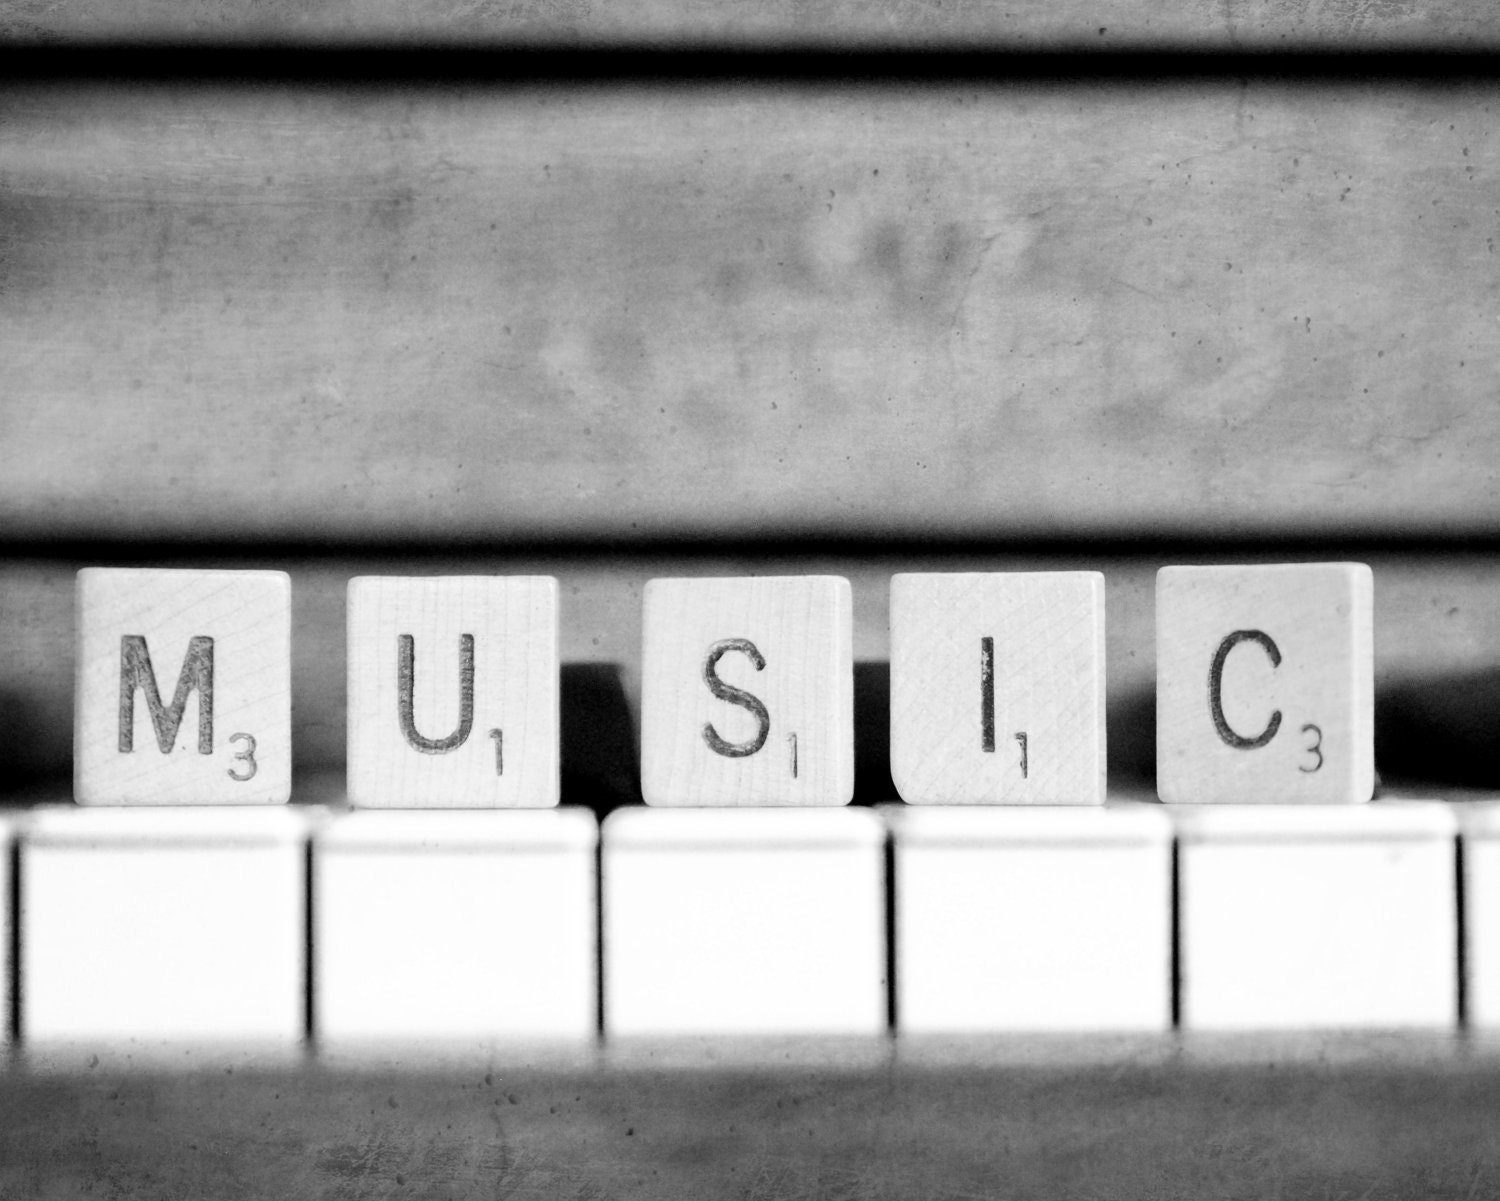 Spell Music black and white photography print-piano keys